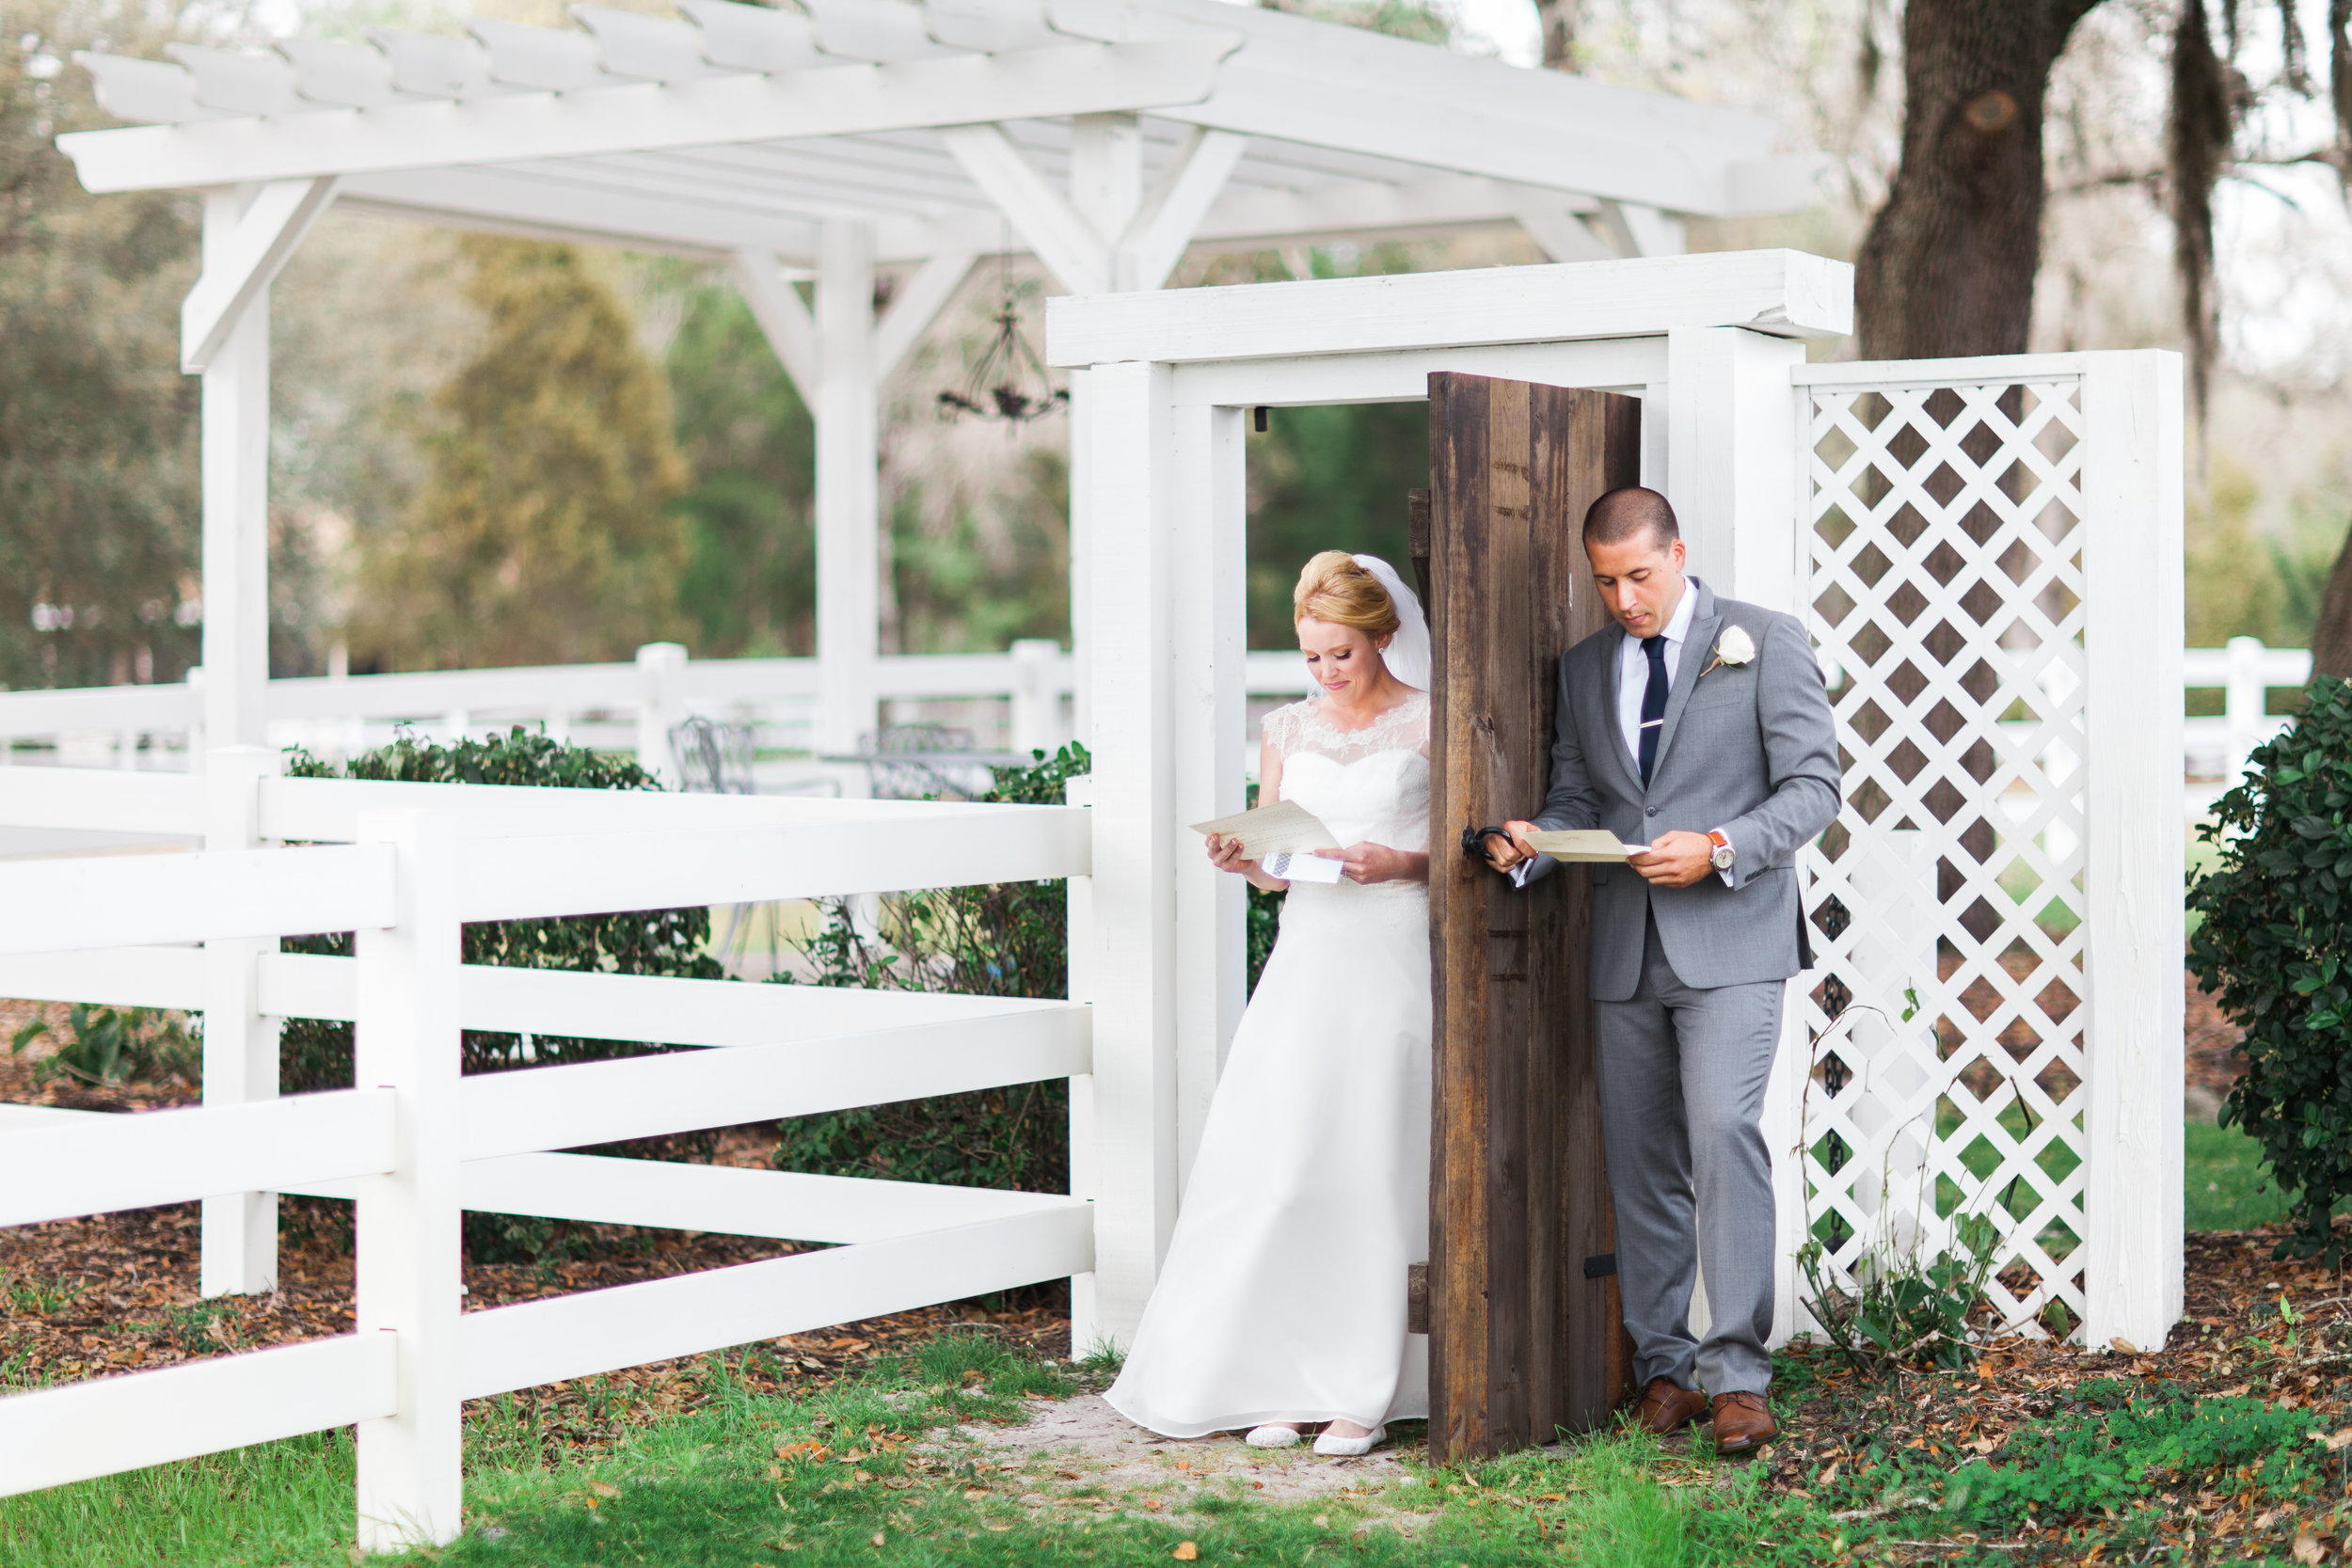 Bride & Groom exchange letters without seeing eachother around an outdoor doorway at their Bramble Tree Estate wedding